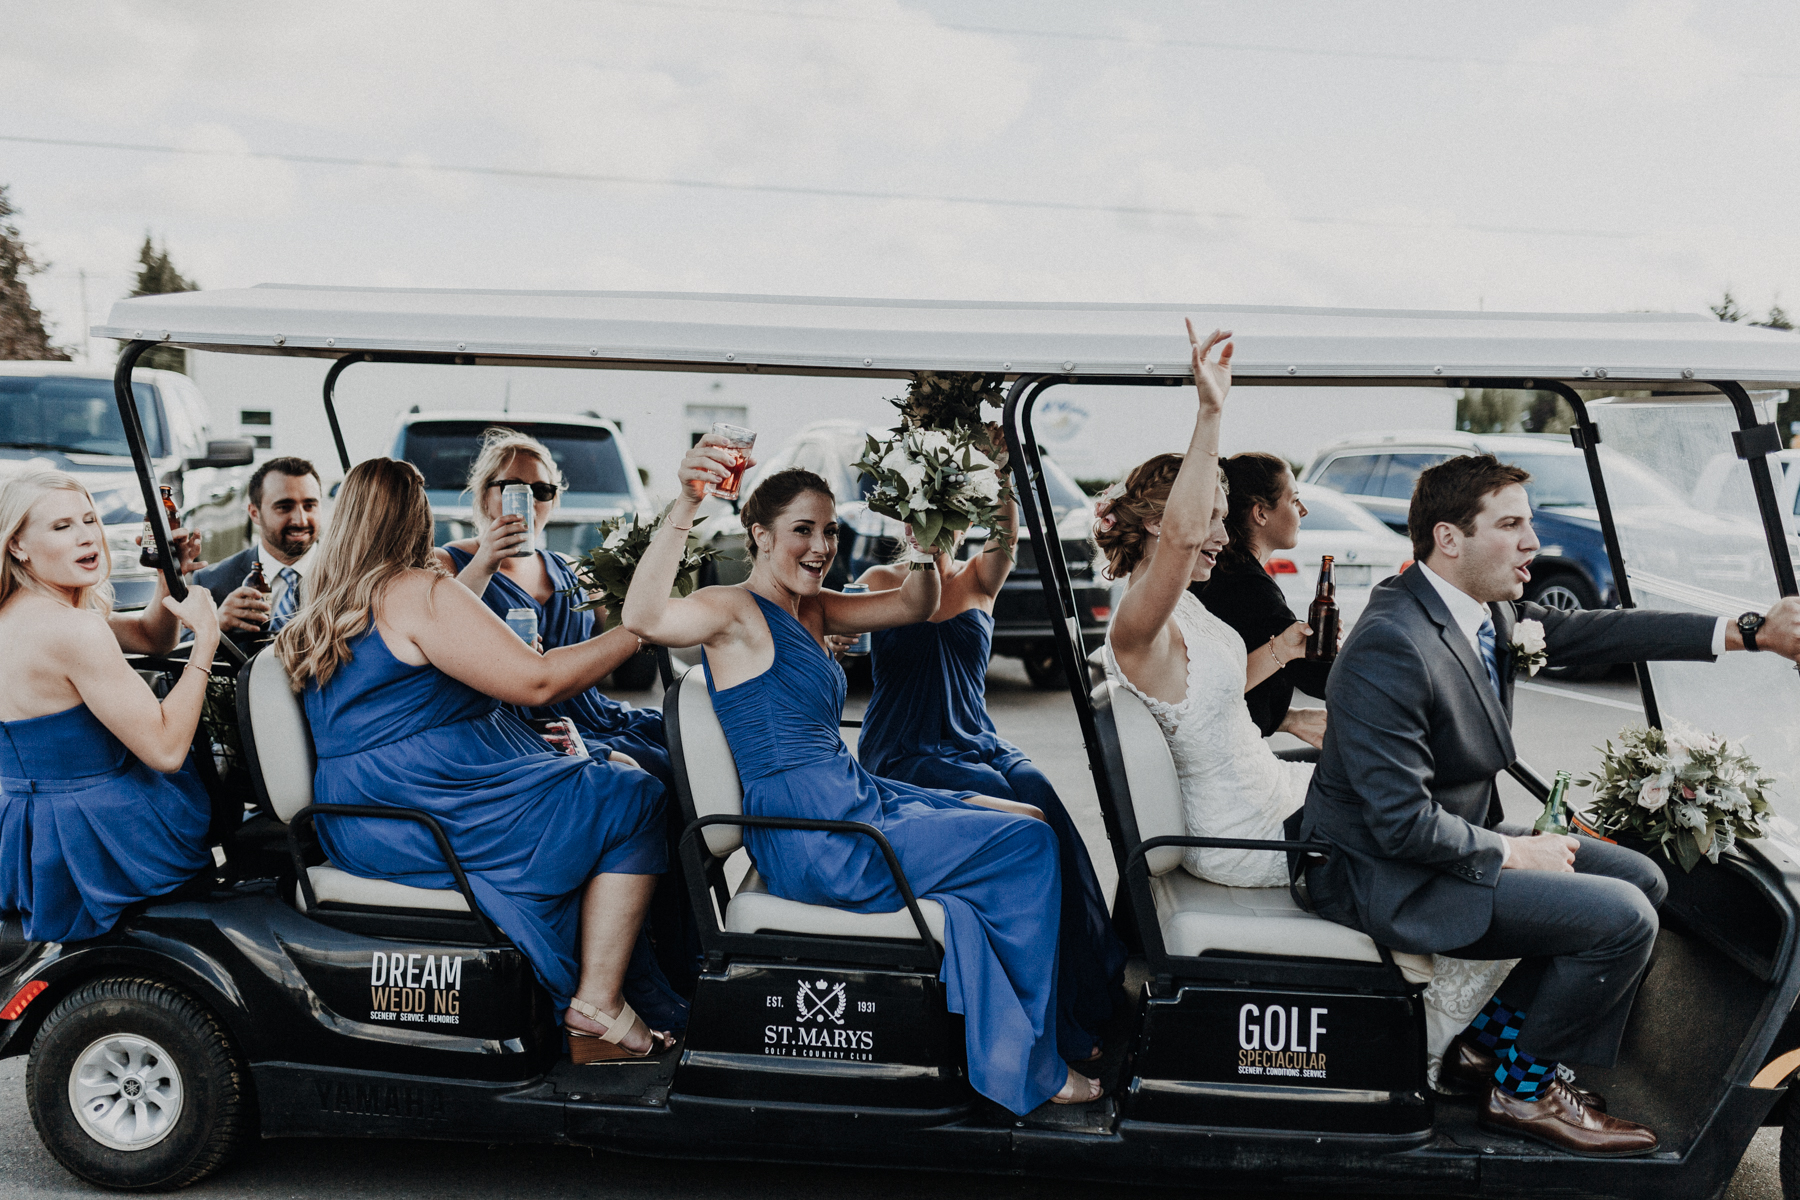 golfcourse_wedding_limo_weddingparty.jpg